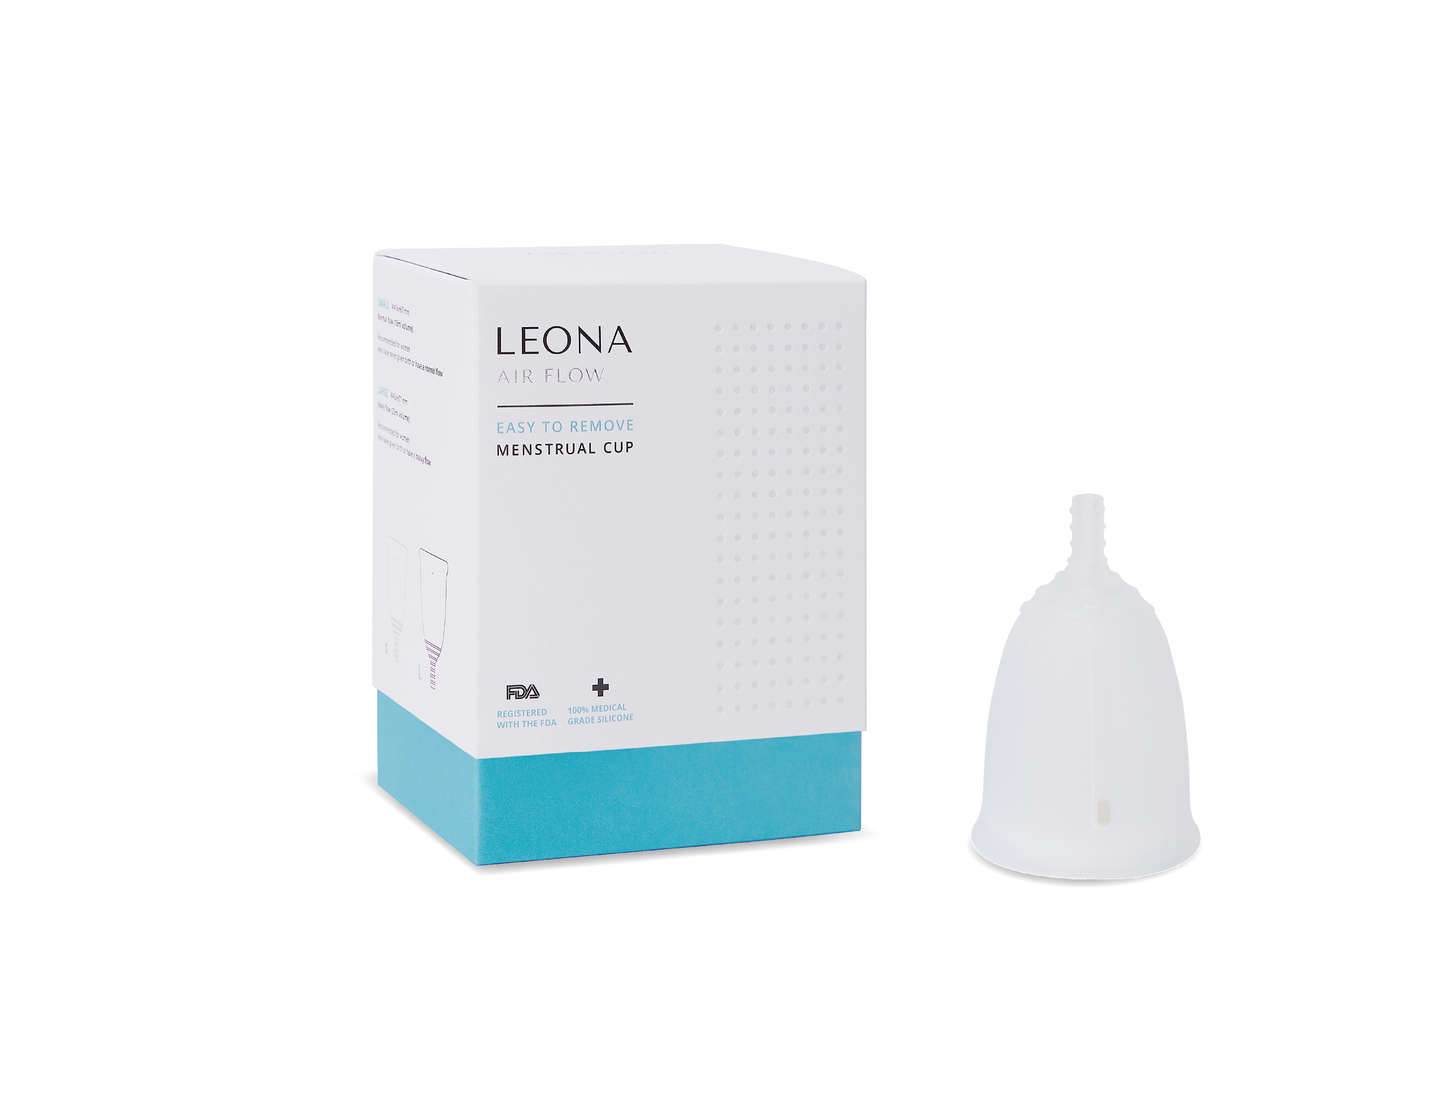 LEONA AIR FLOW - EASY TO REMOVE MENSTRUAL CUP